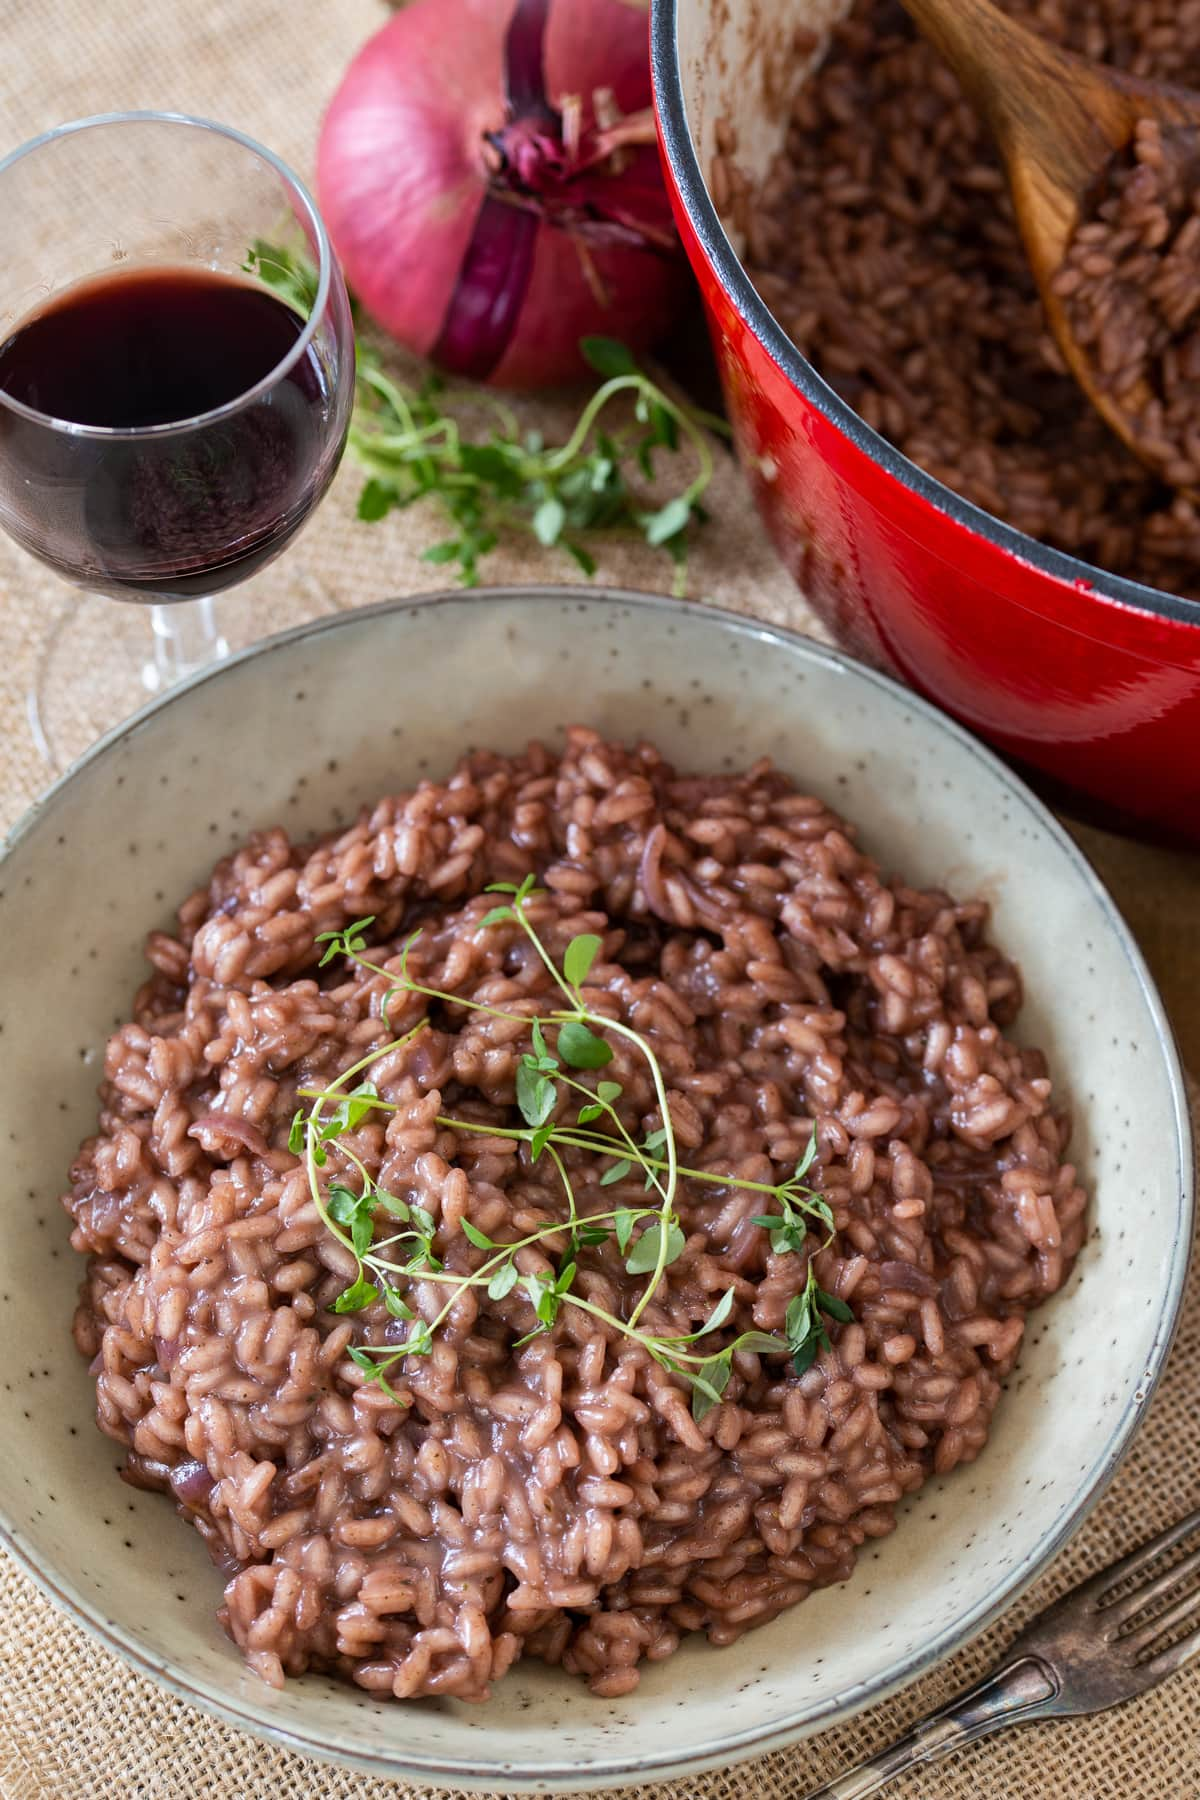 Simple red wine risotto topped with fresh thyme.